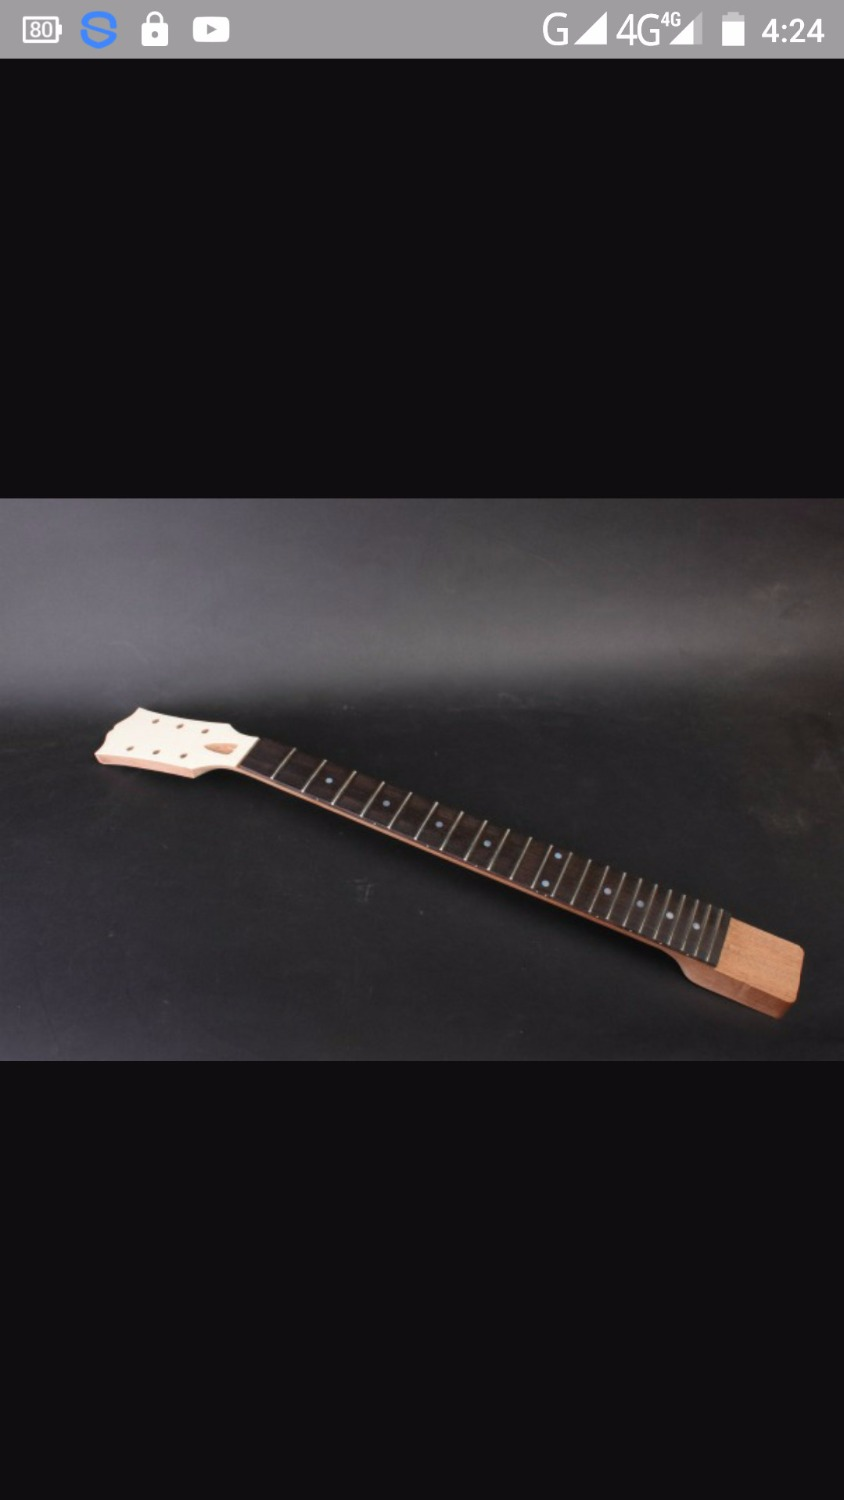 one electric guitar neck  Mahogany made and  rosewood  fingerboard 22 fret  628mm  24.75 dot inlay, 12 inch radius black color 24 frets holt on one electric guitar neck mahogany wood and rosewood fingerboard 171